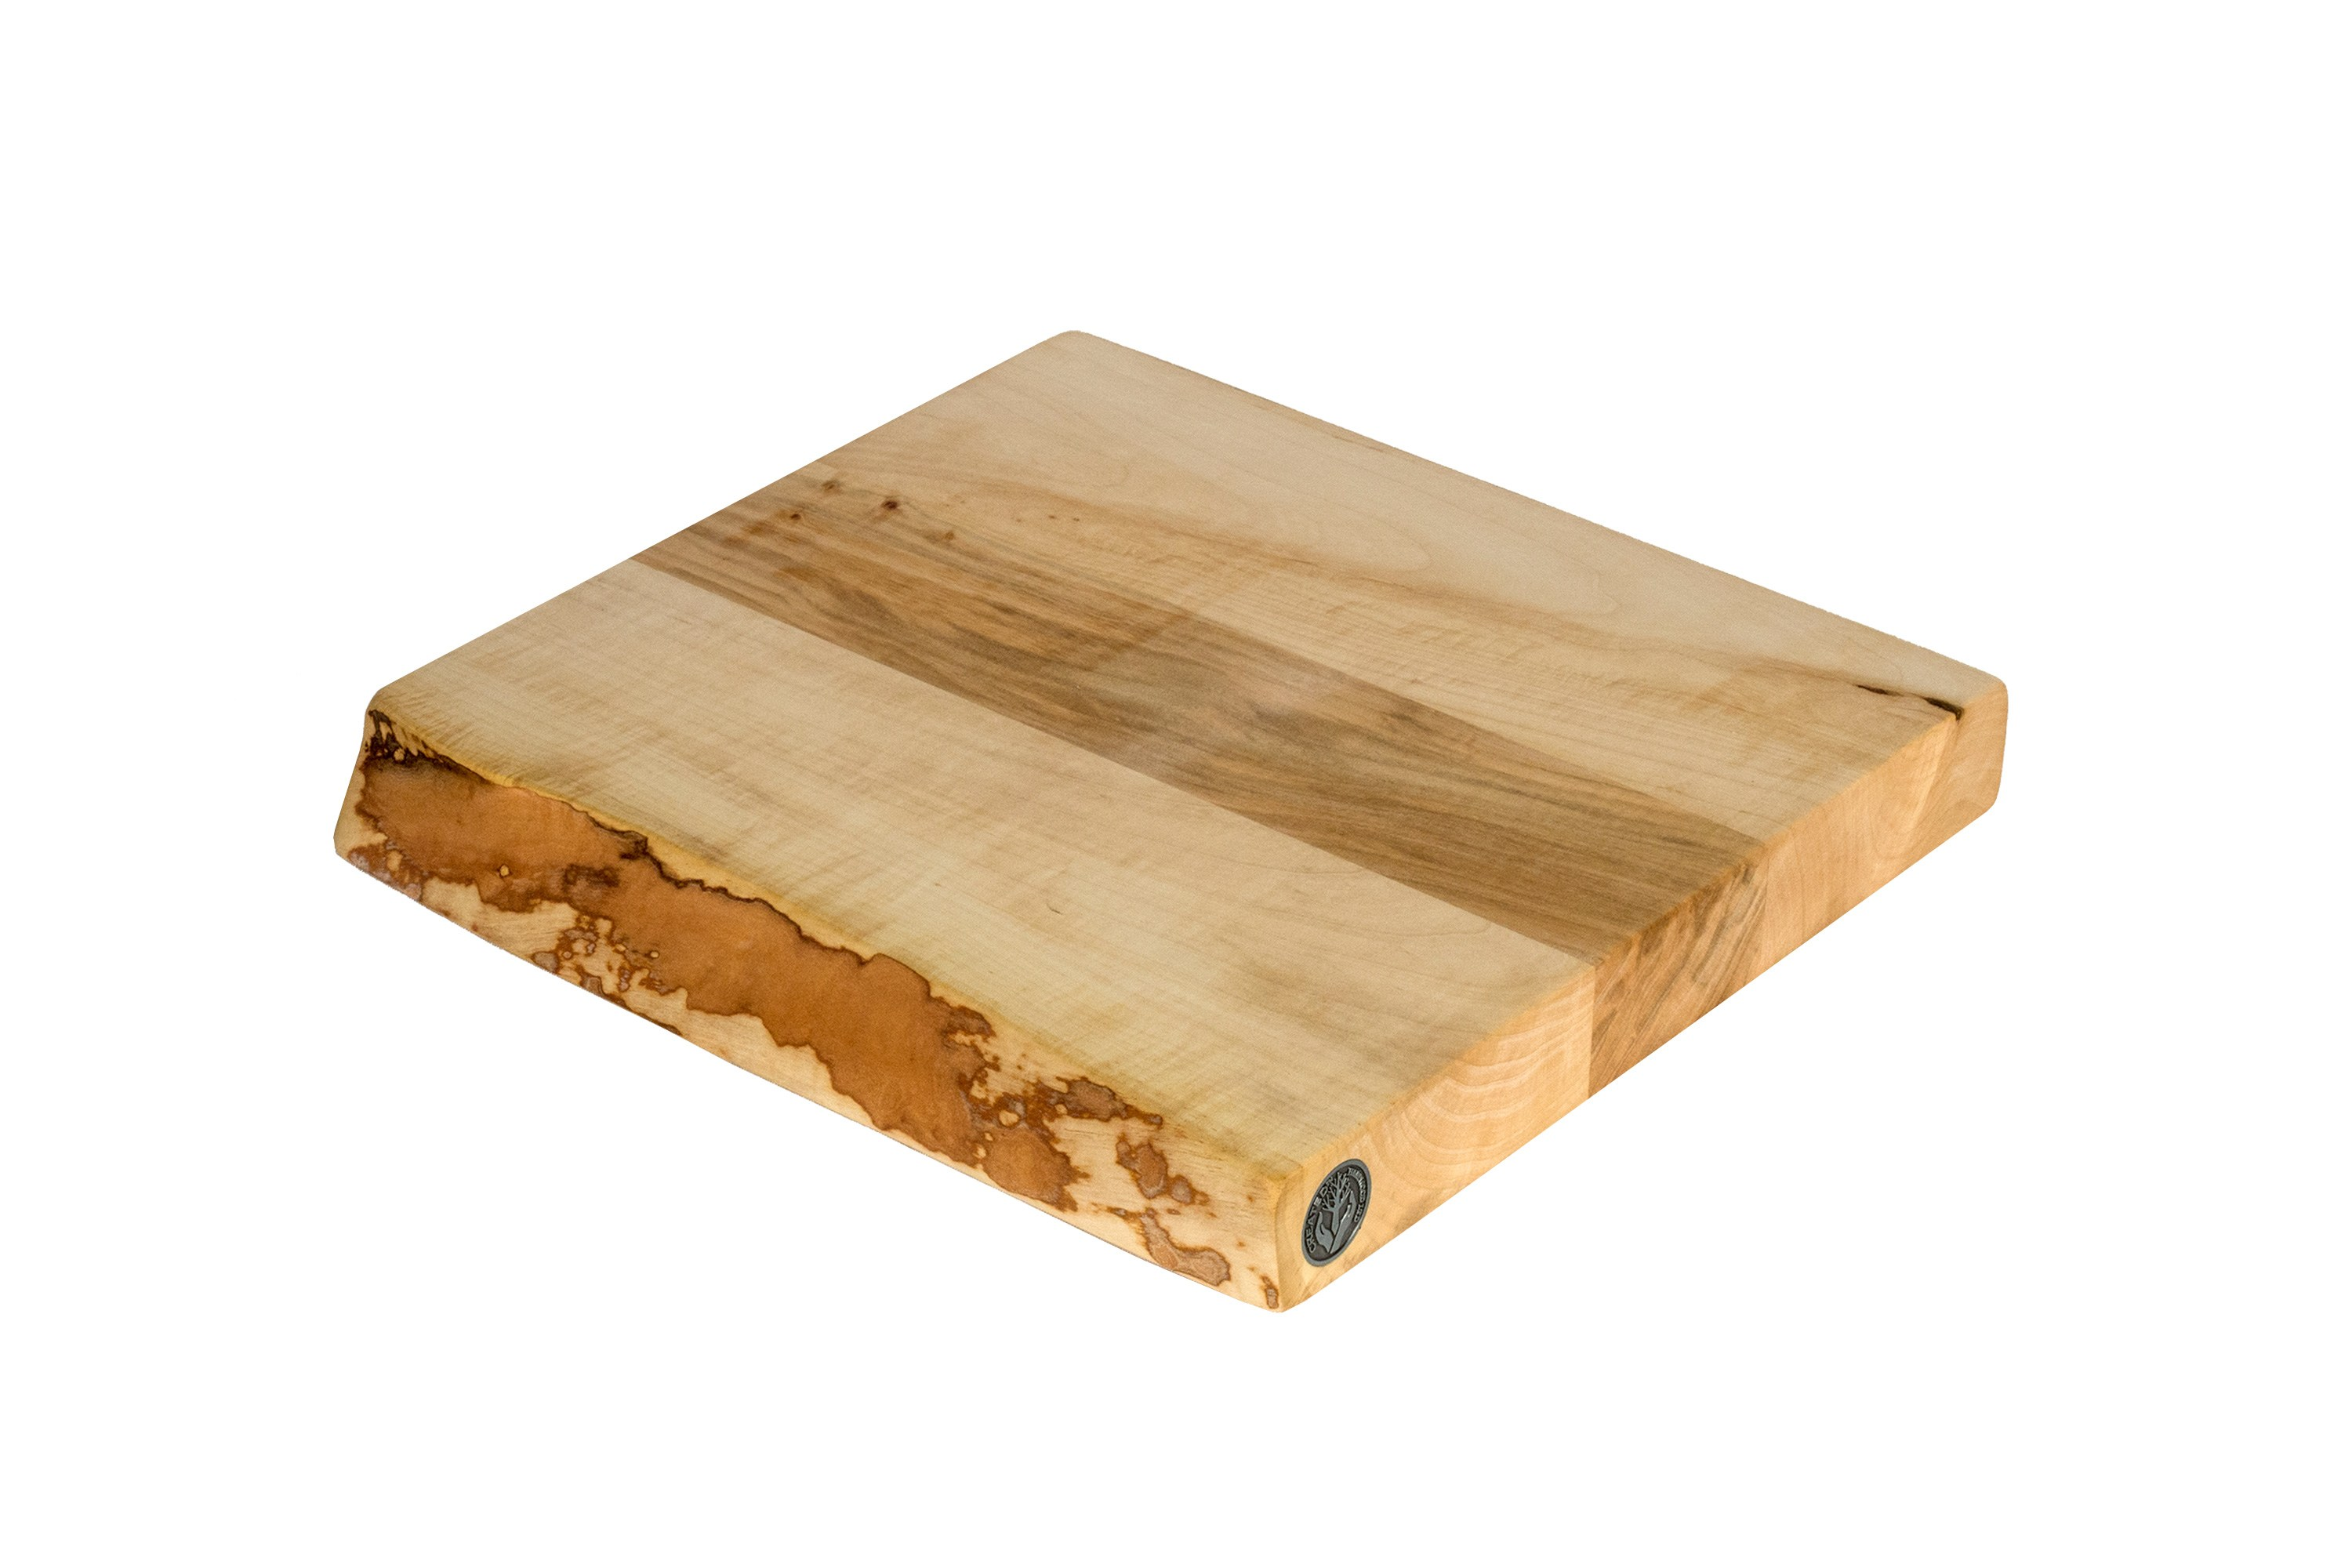 Live Edge Maple Cutting Board #076 - 12